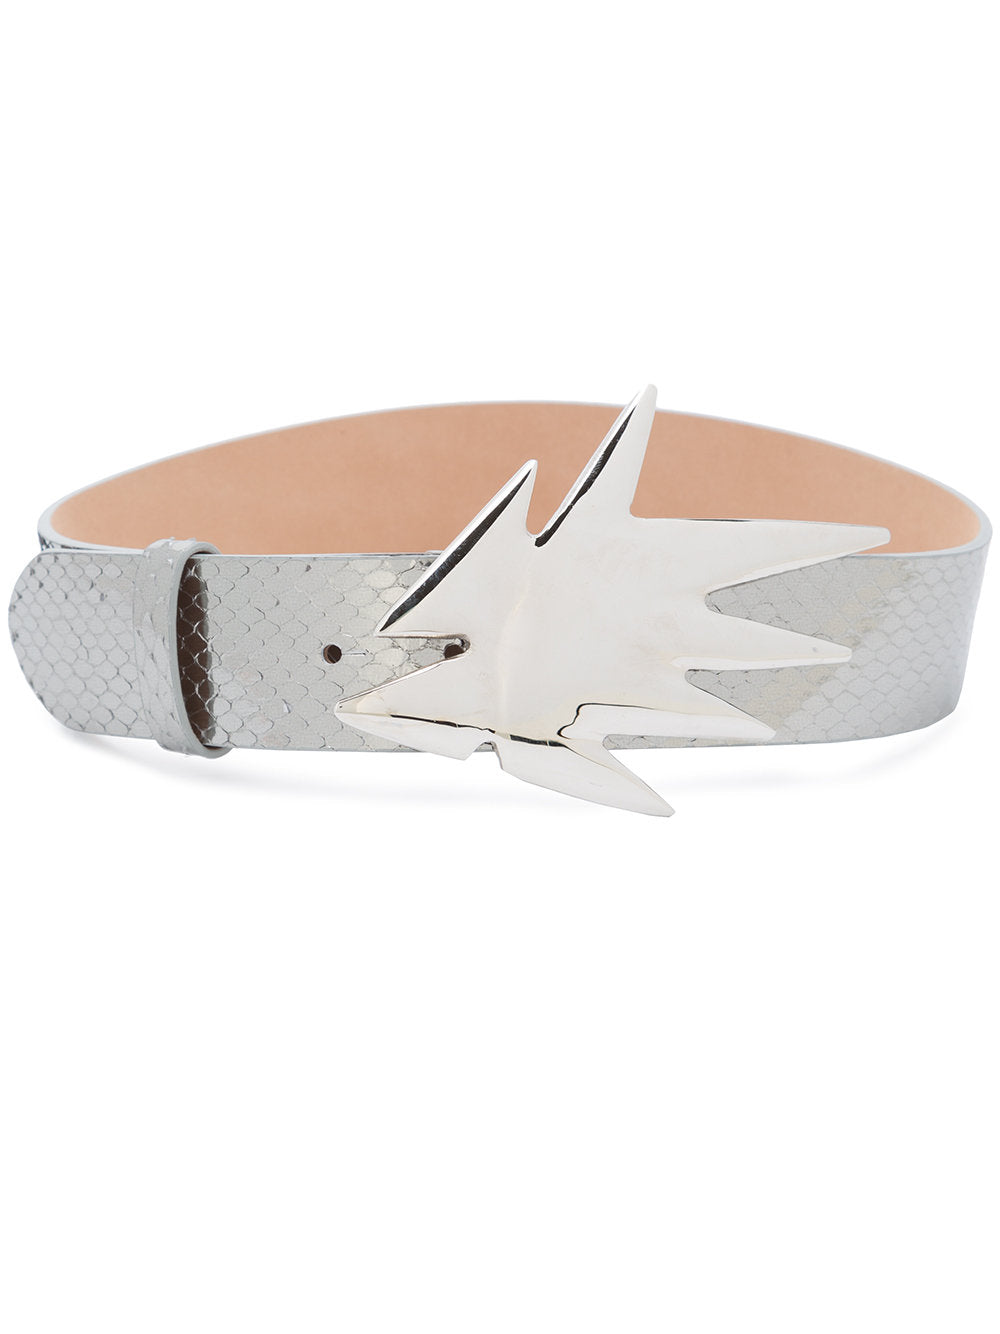 Dilara Findikoglu odd92 exclusive Silver Snakeskin Shock Belt - 1